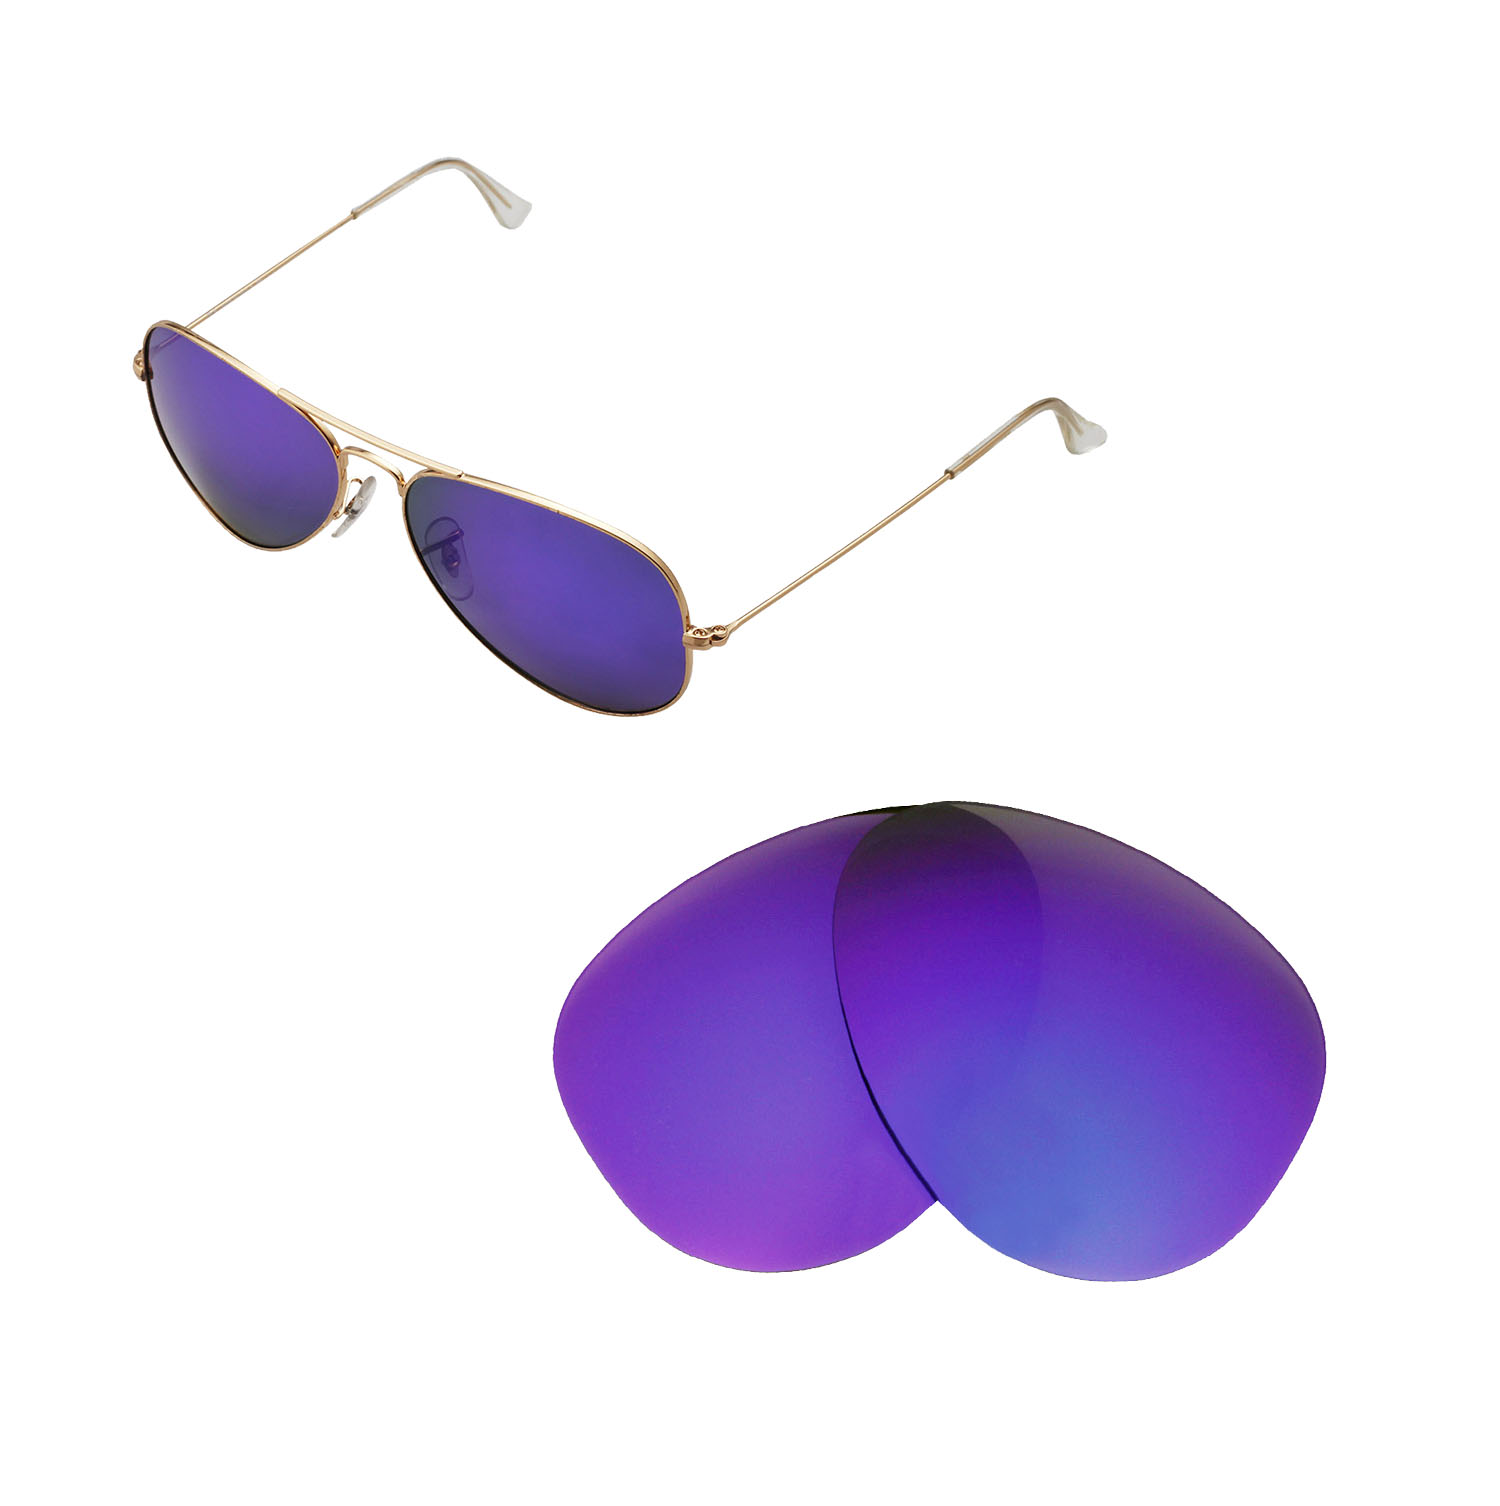 dd586db1d9f Details about New WL Polarized Purple Lenses For Ray-Ban Aviator Large  Metal RB3025 58mm